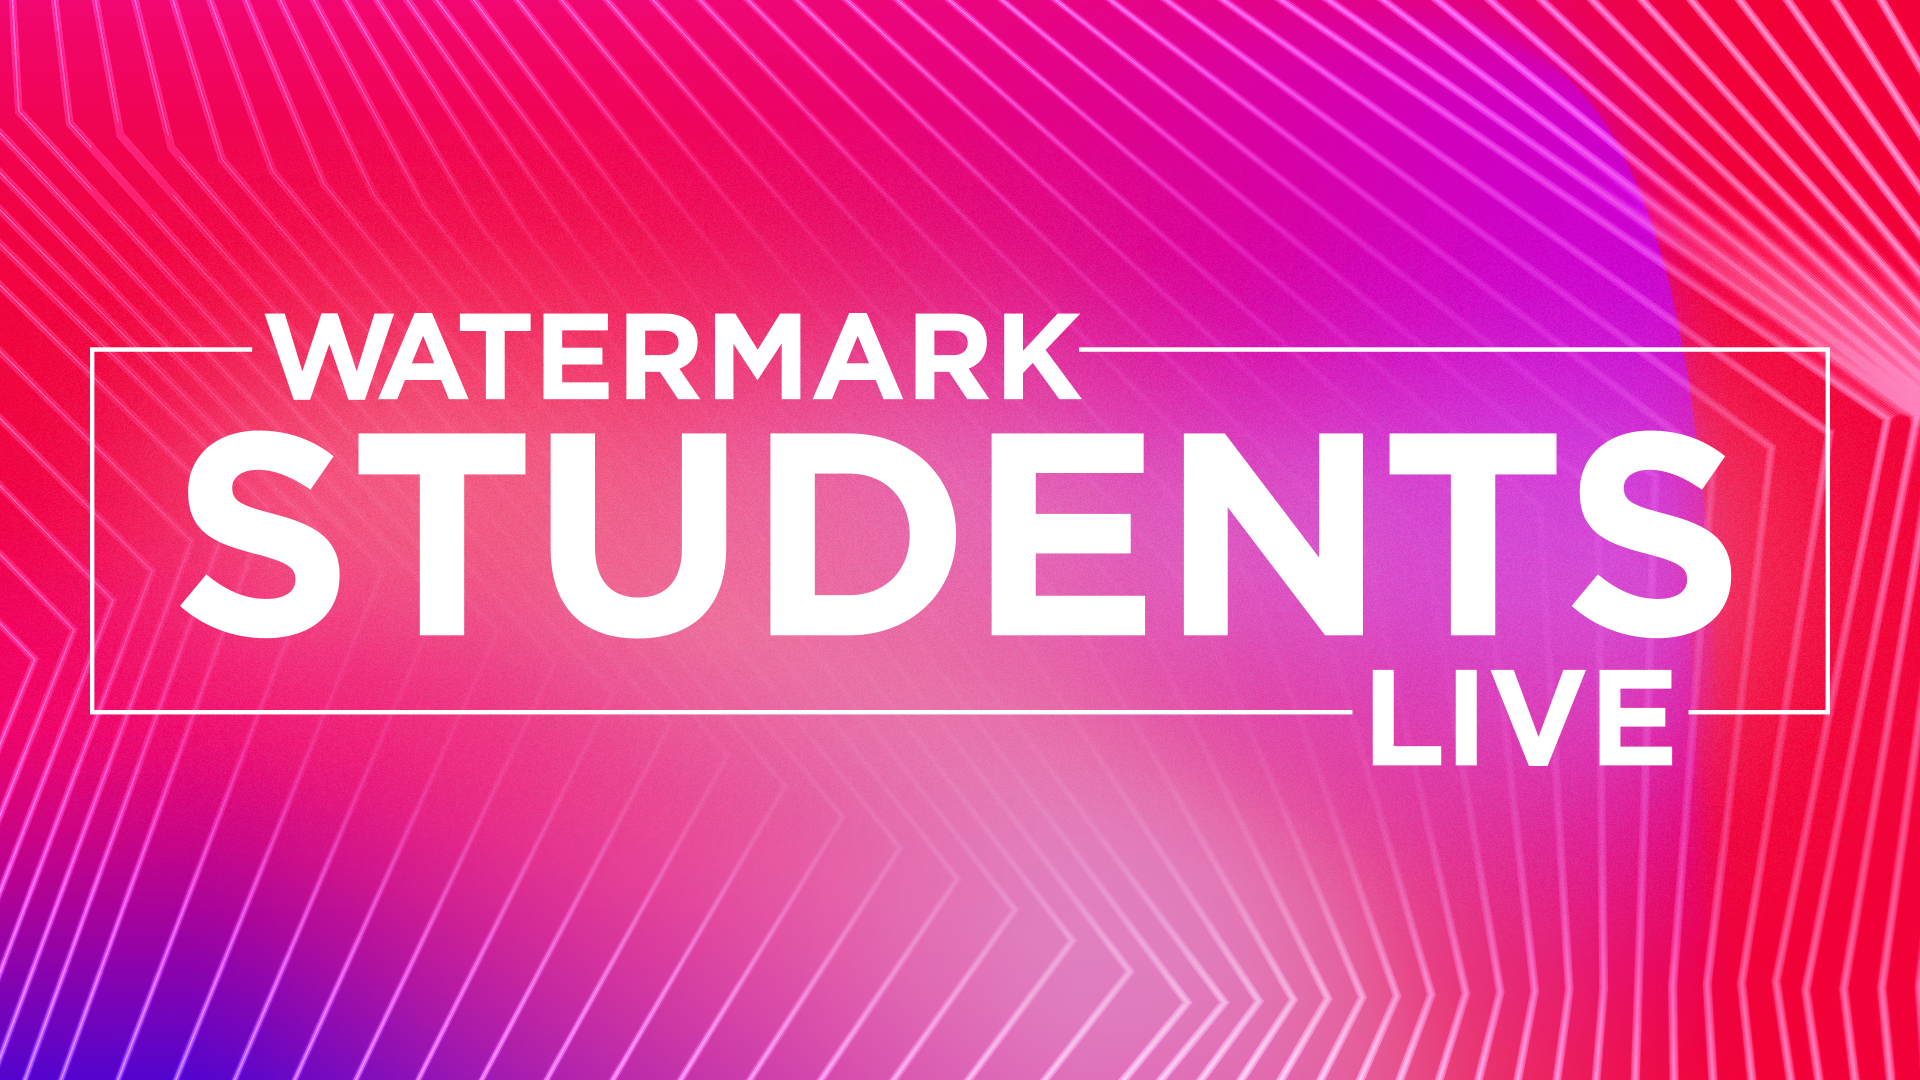 Watermark Students Live